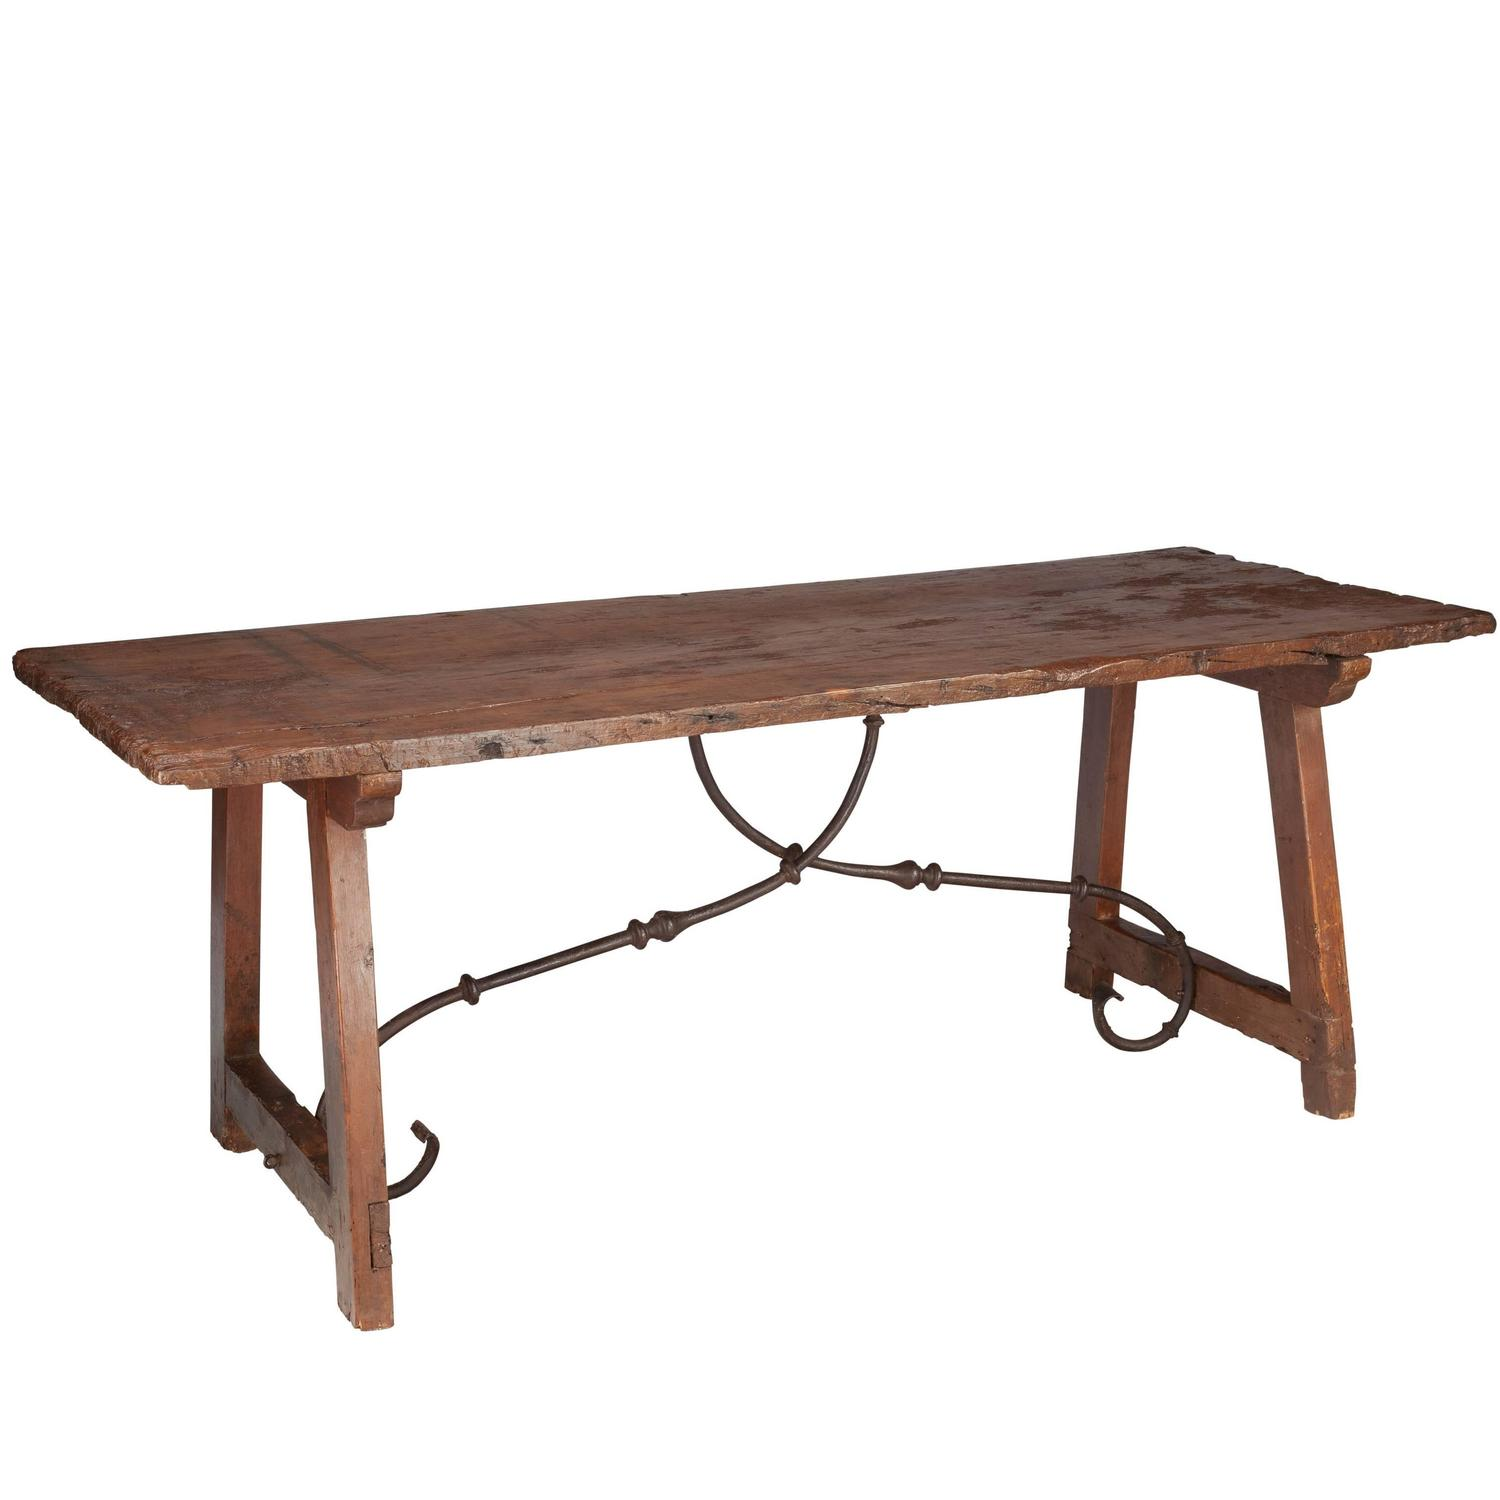 Spanish 17th 18th century refectory dining table for sale for Table in spanish